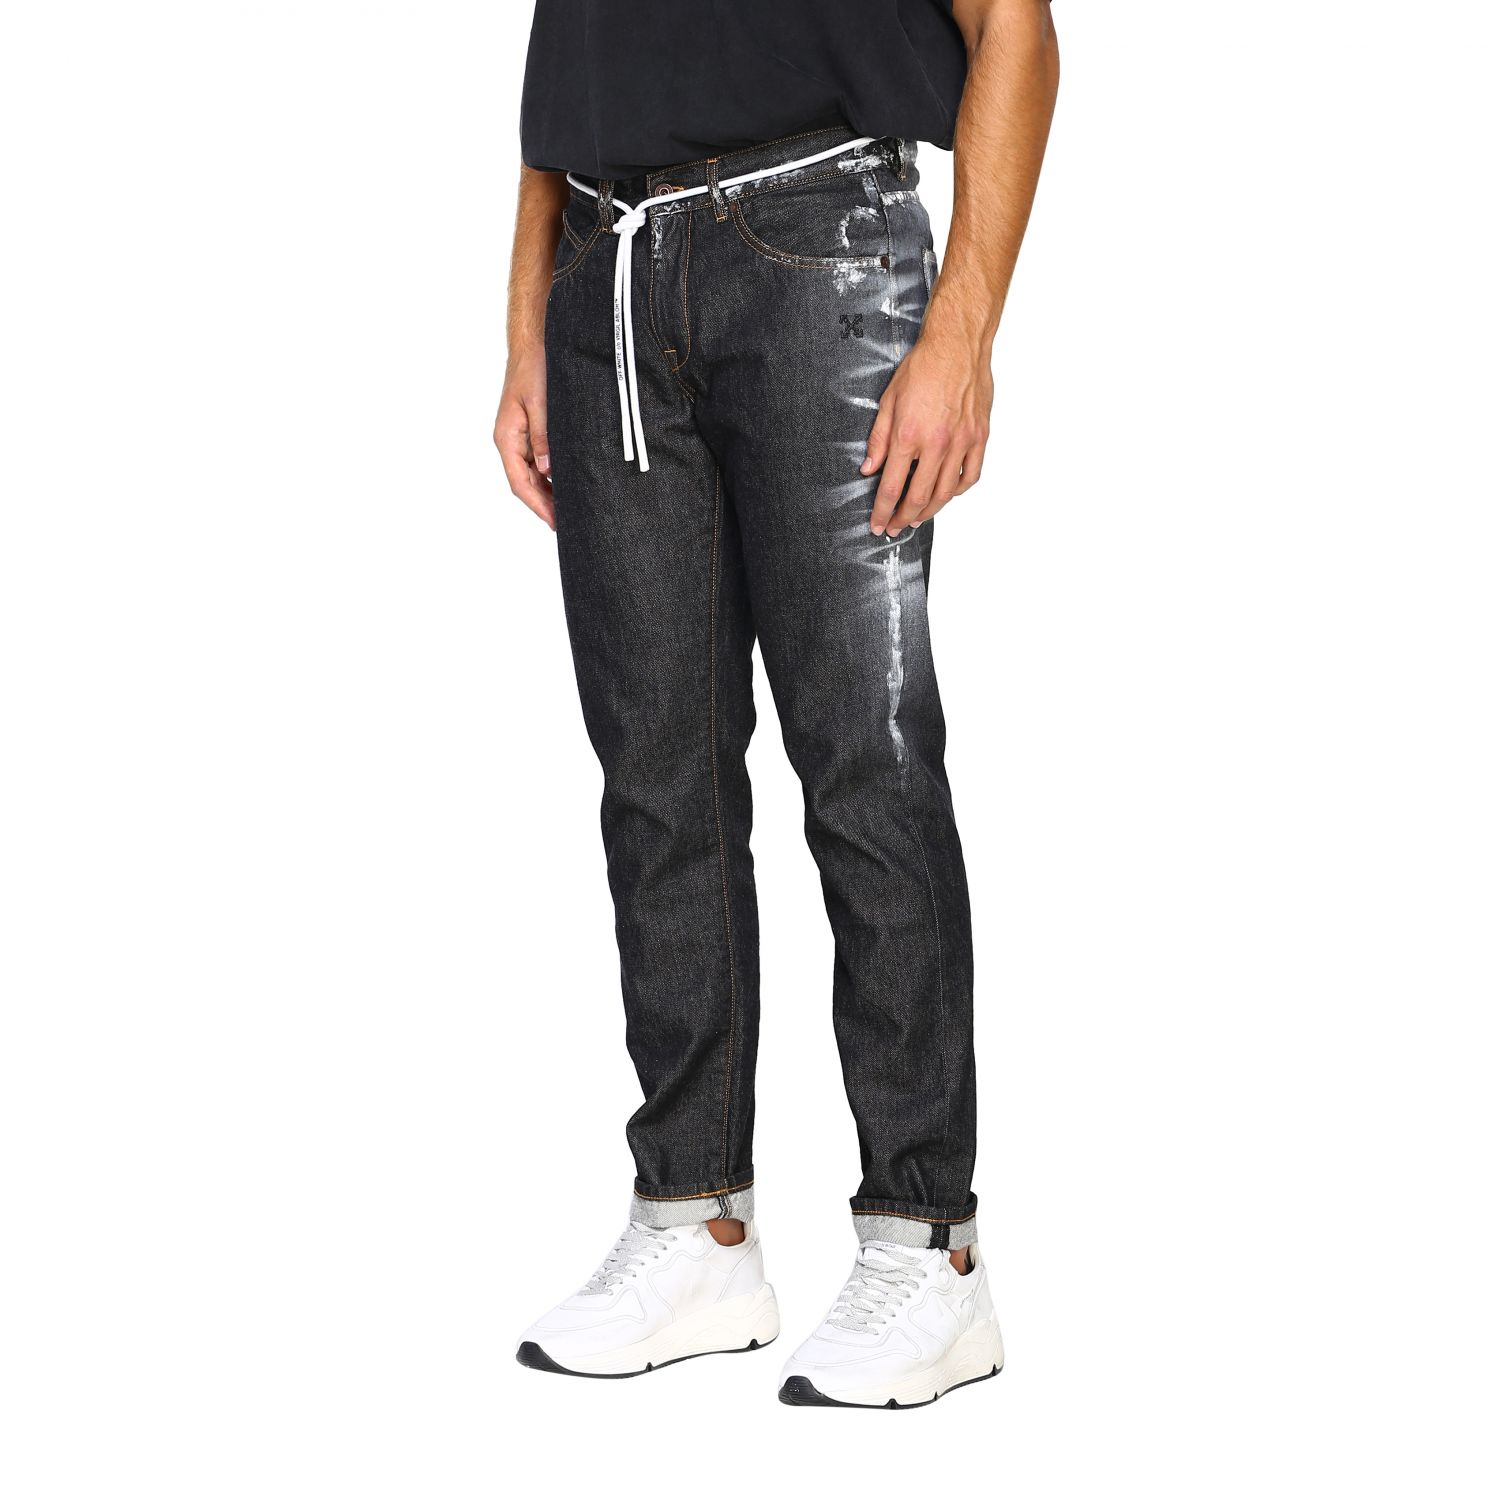 Jeans Off White: Jeans herren Off White schwarz 4